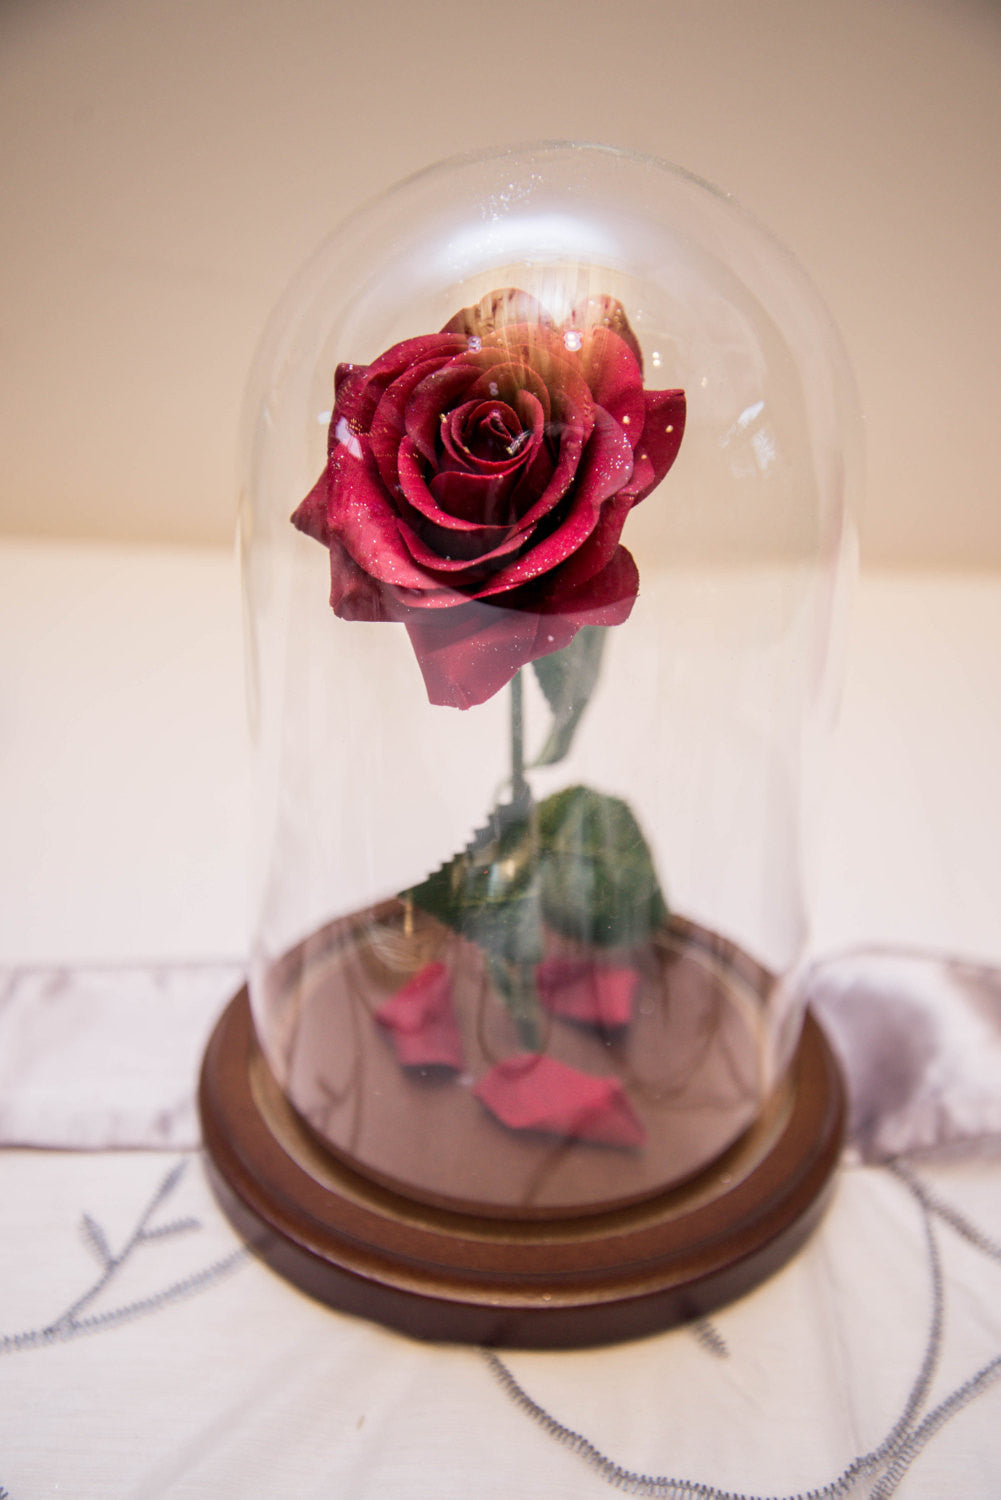 SALE!!! Beauty and the Beast Enchanted Rose Jar Dome Belle W/ vintage style hand mirror Valentine's Day gift